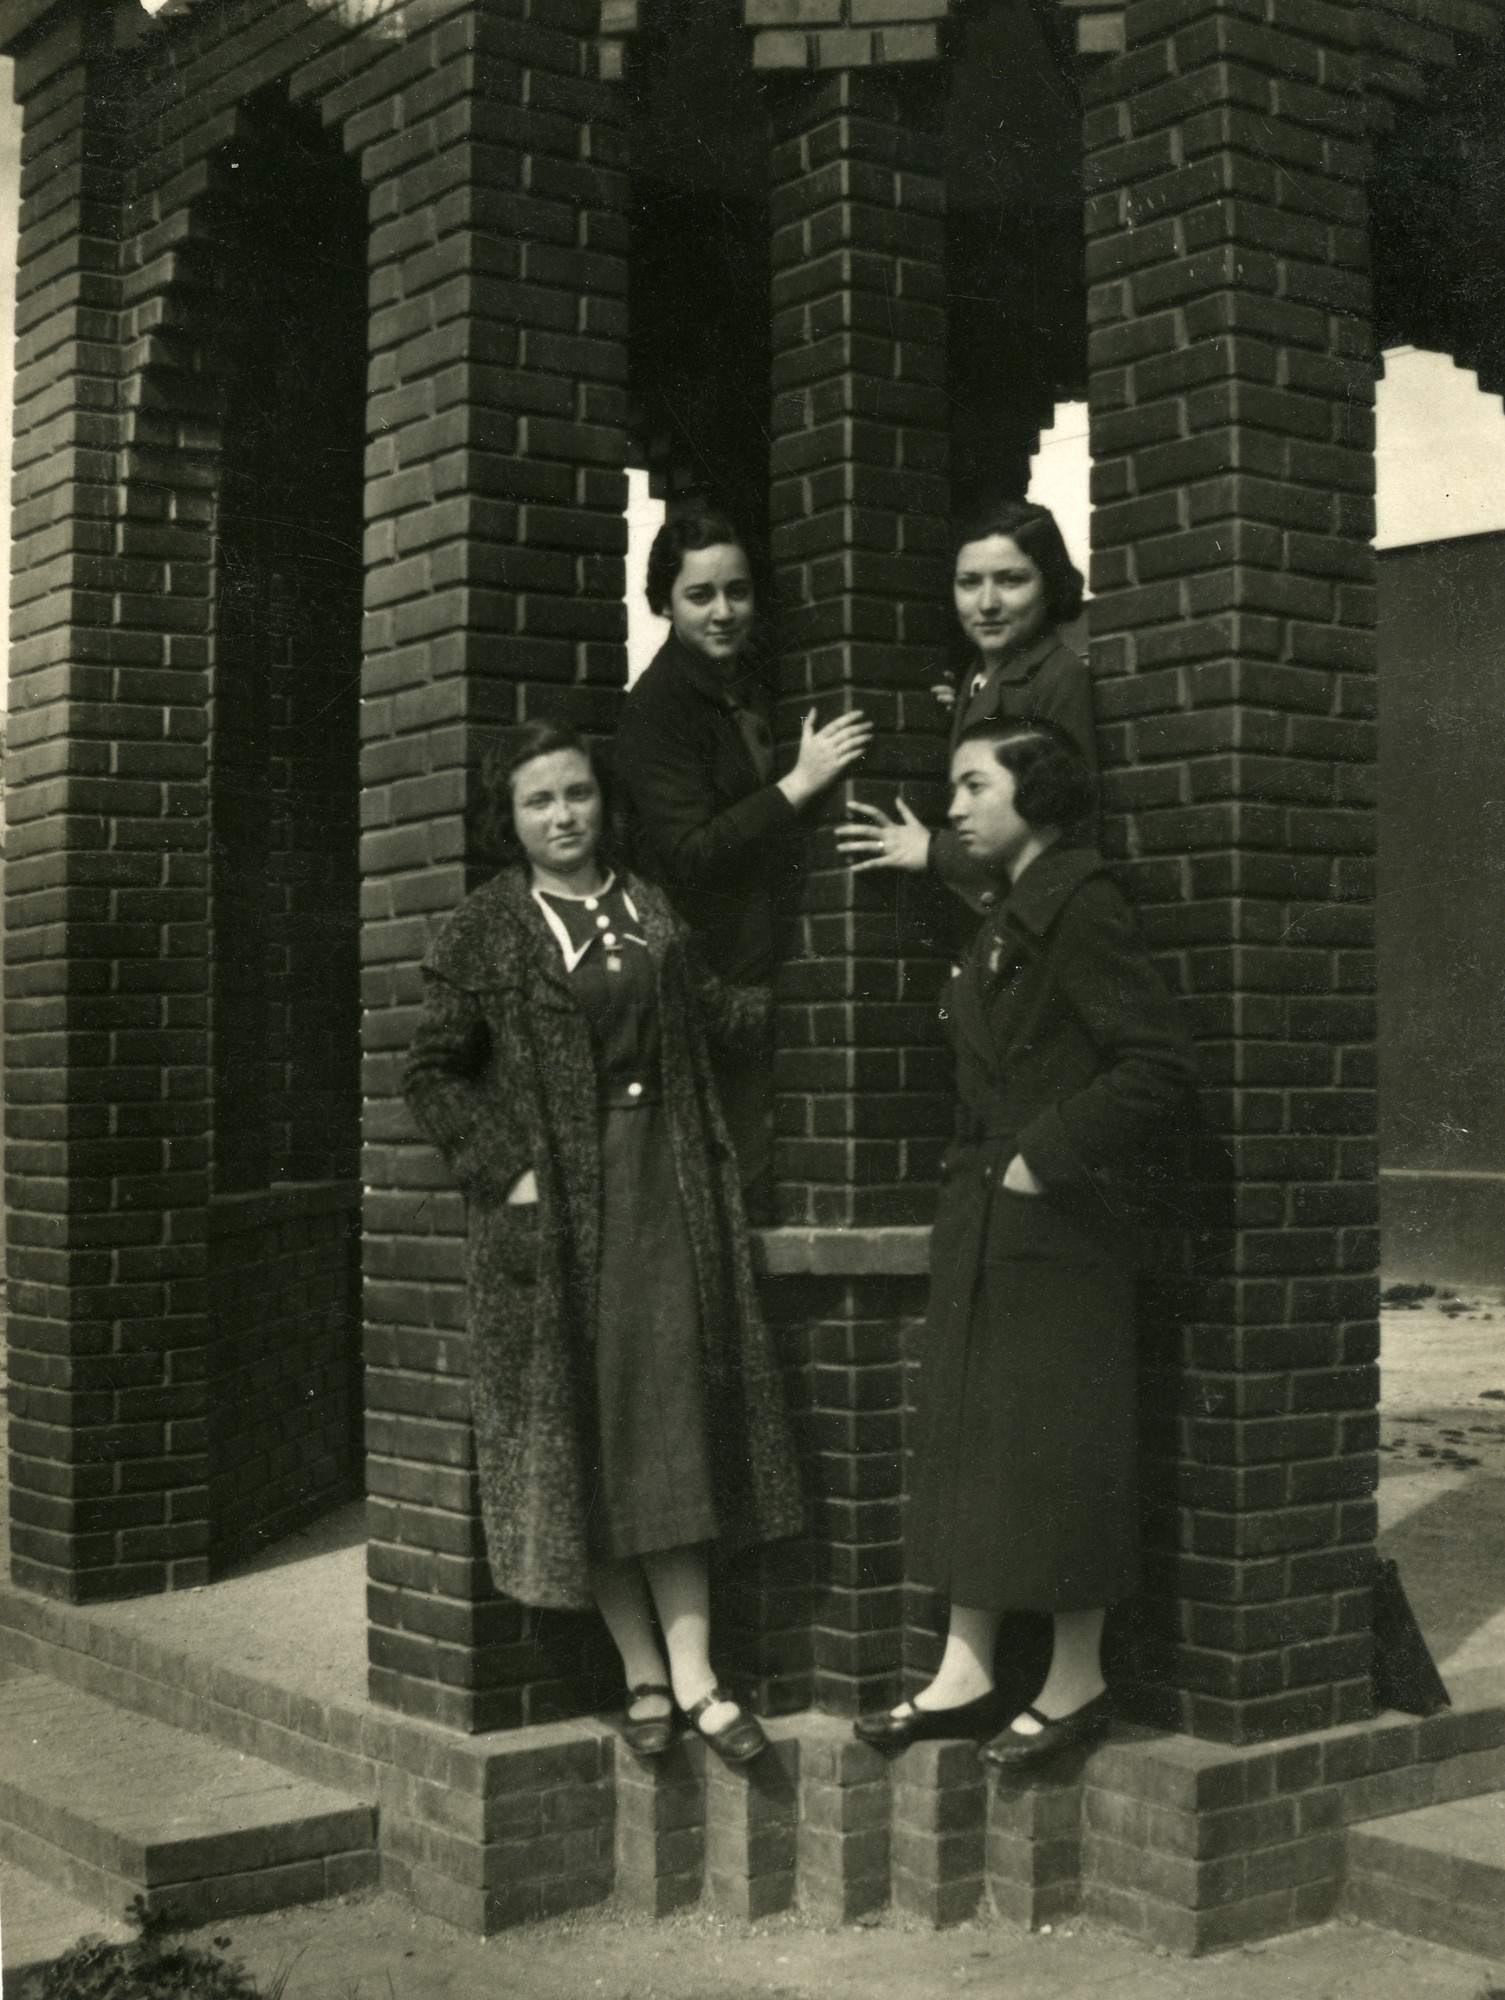 Four young women stand on the ledge of a brick structure under the bridge, in Salonika in 1940.  Jenny Noam (nee Ezratty) is standing in the front row on the left.